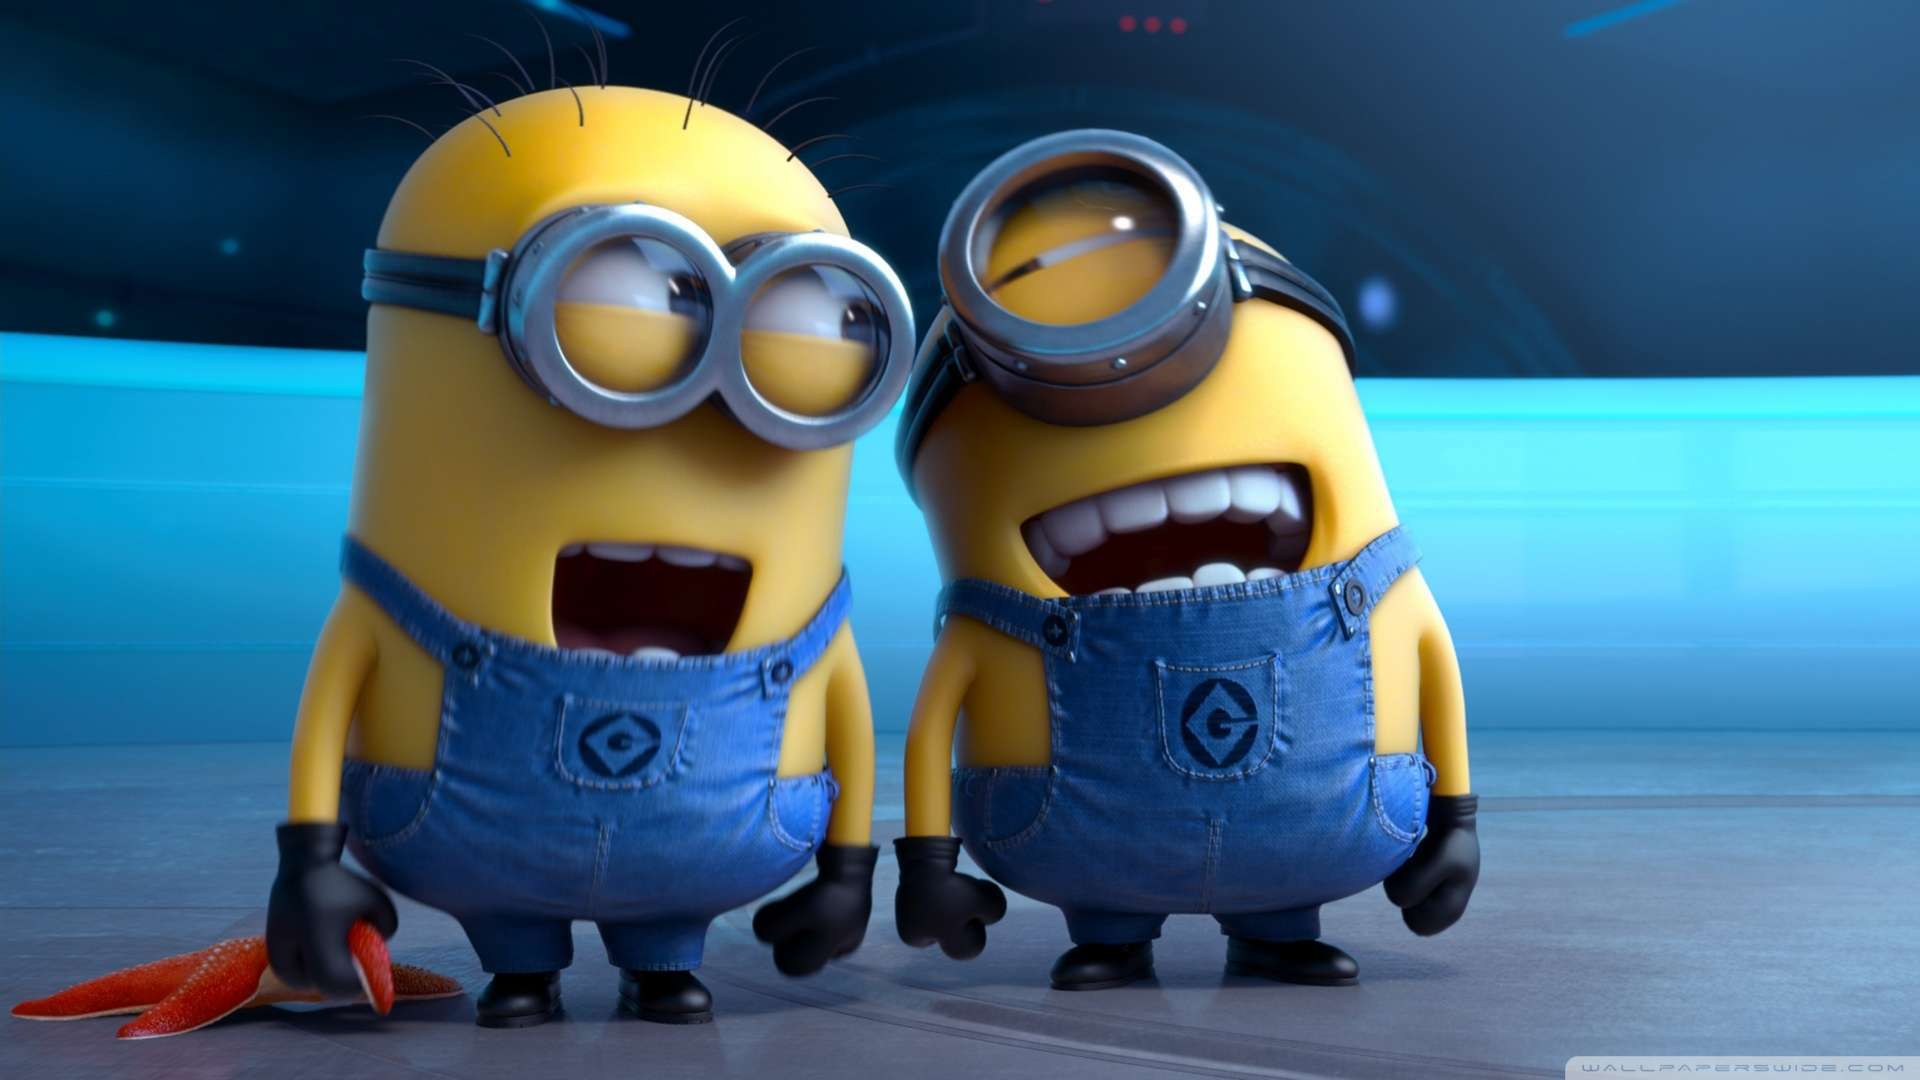 HD-1080P-Me-Laughing-Minions-1080p-HD-at-1920-x-1080-Resolution-wallpaper-wpc9005949